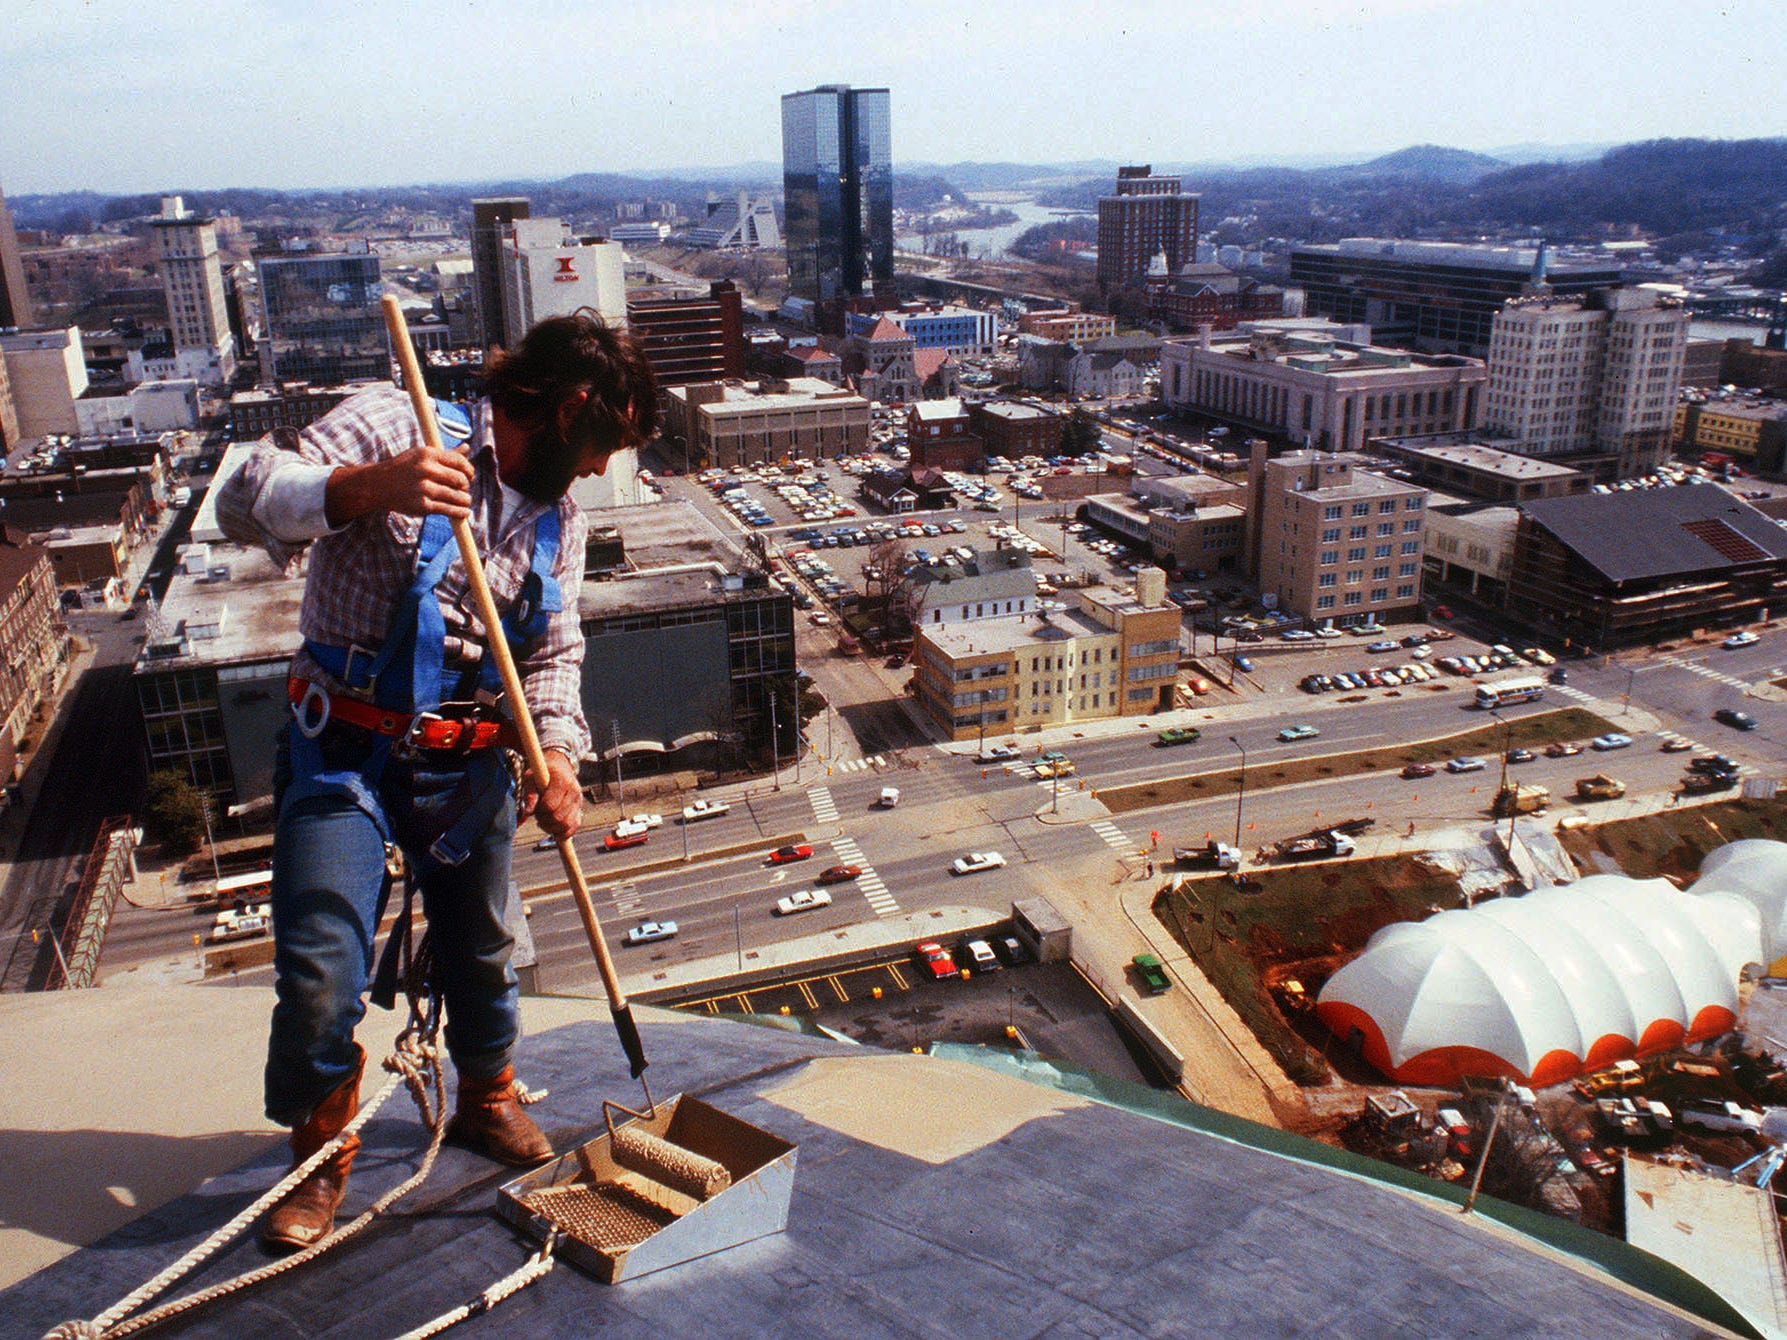 A.C. Cusick with Capitol Roofing Co. keeps his mind on his job and his secure footing as he paints the top of the Sunsphere, 266 feet above the site of the 1982 World's Fair. The rubber roof of the sphere got two coats of gold paint to match the gold glass in the sphere.